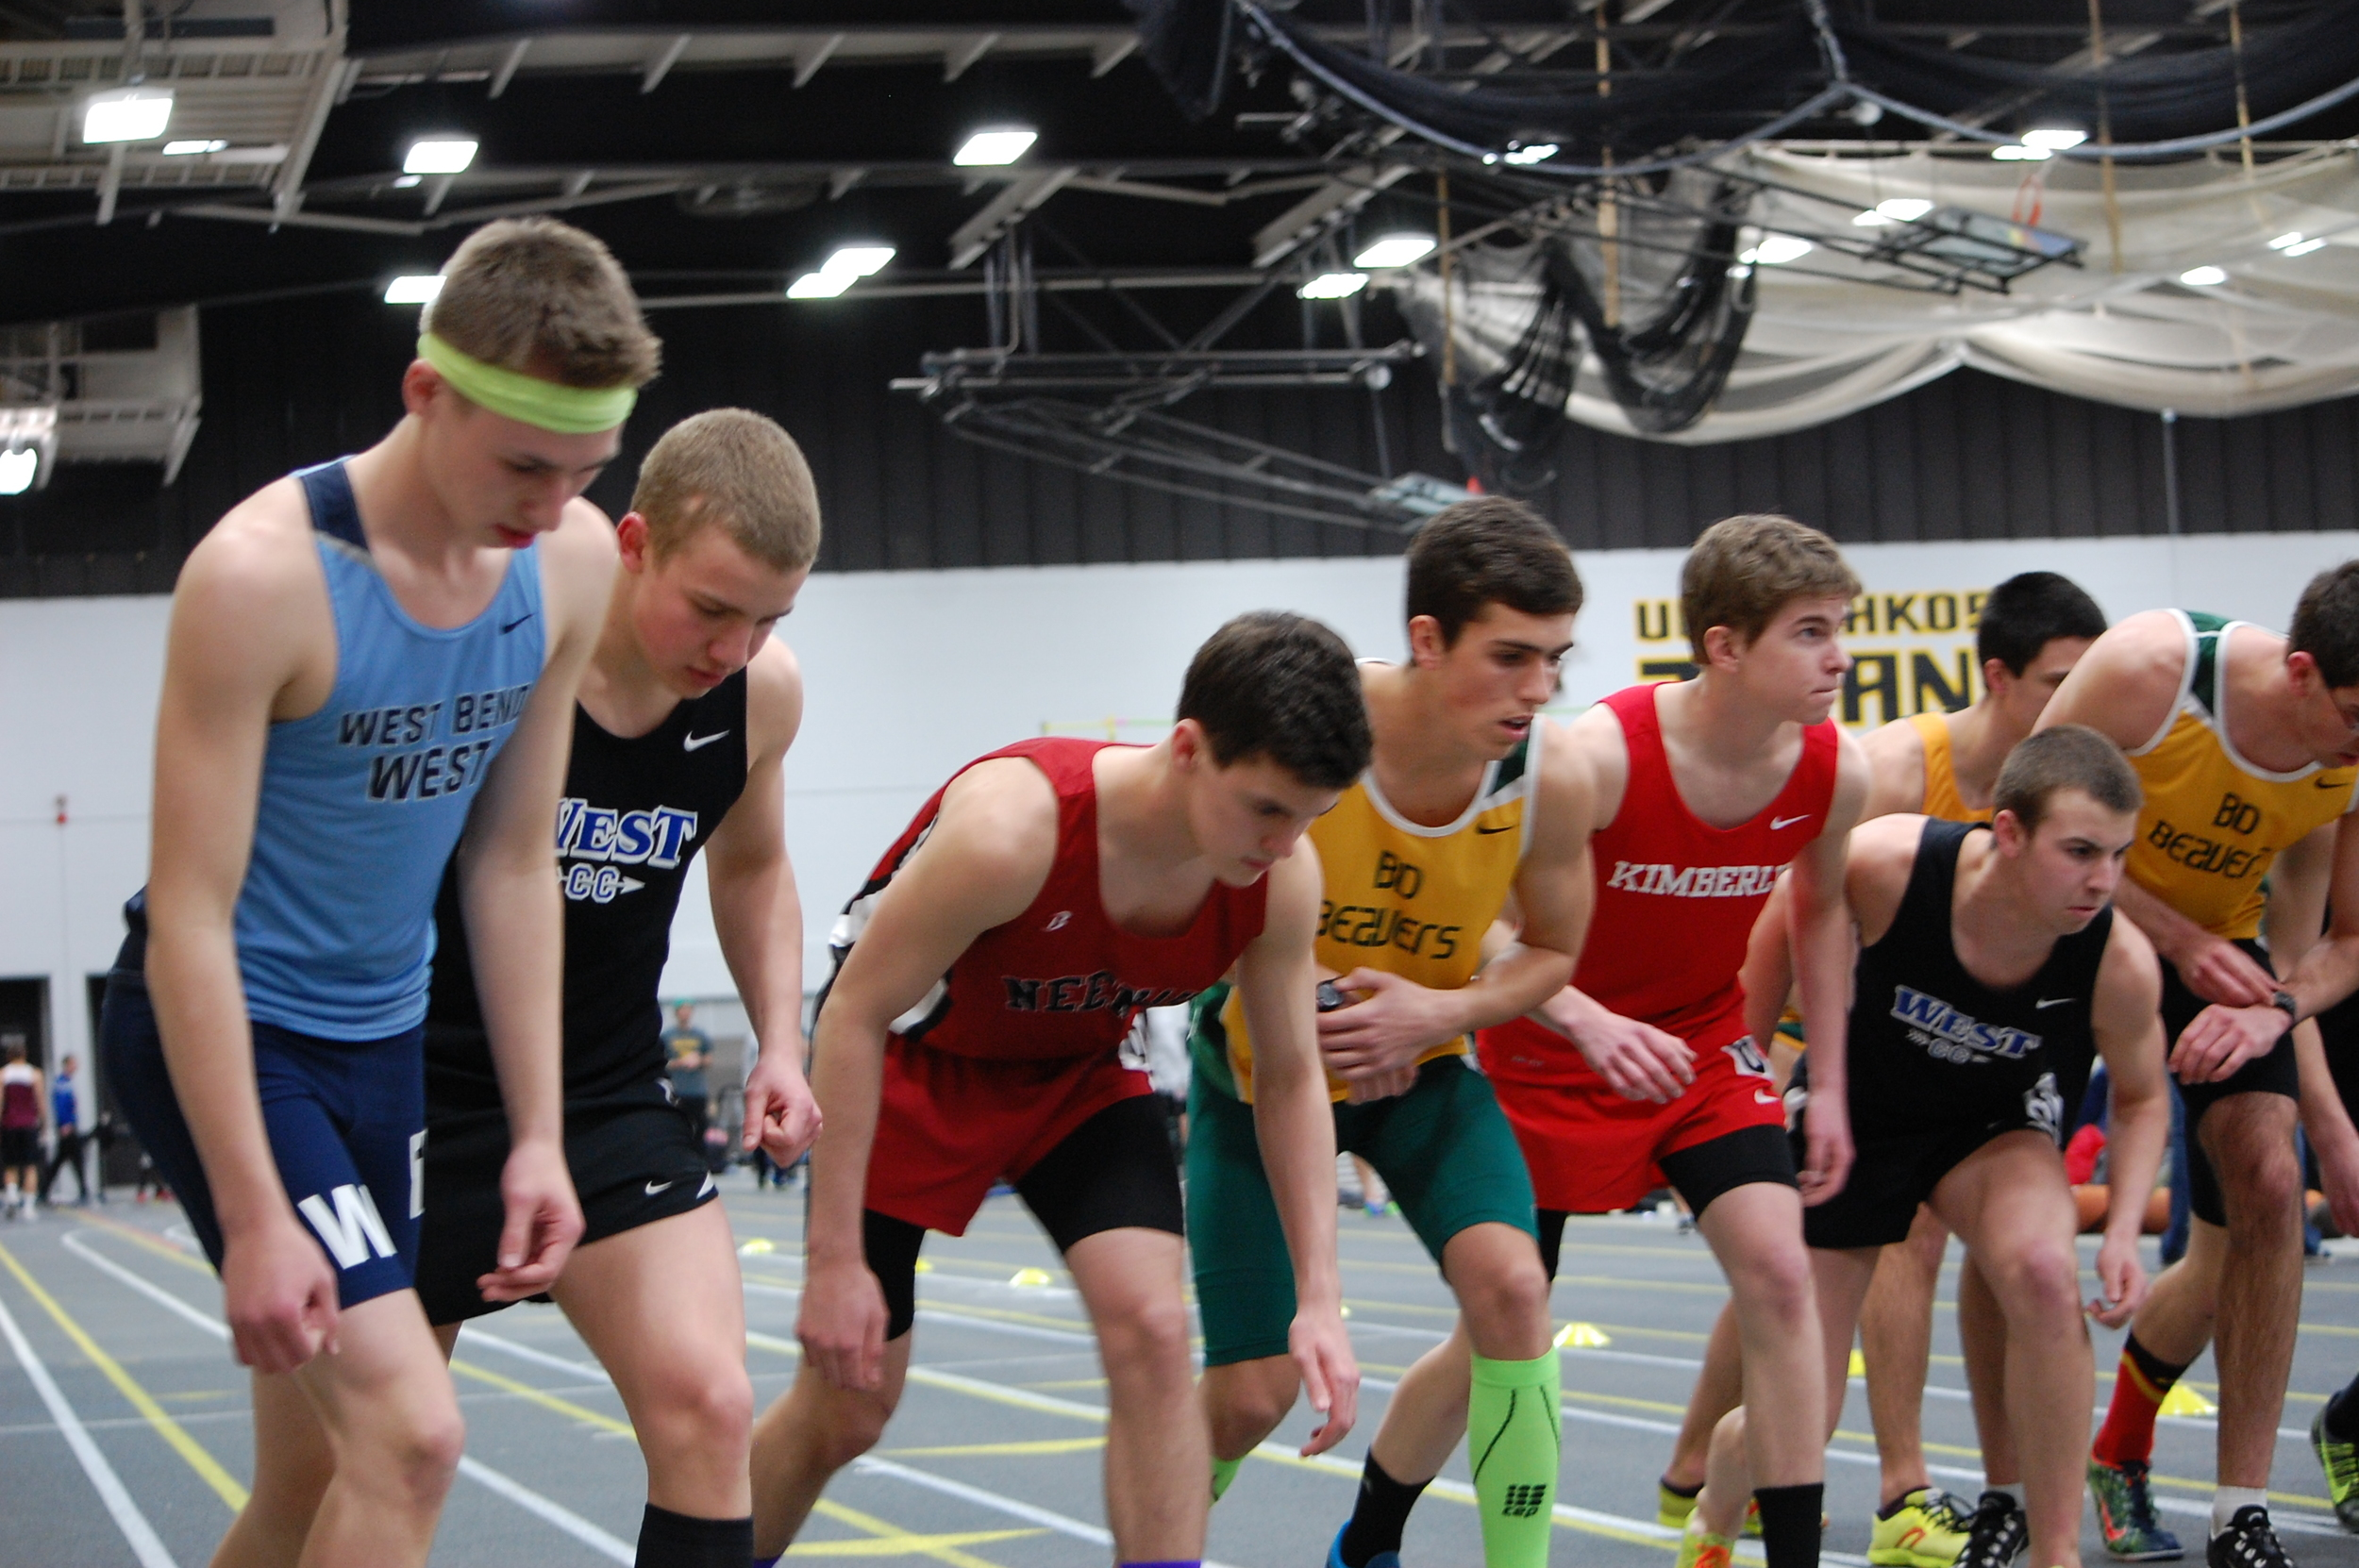 Rourke Lenz and Jake Rost get set for the mile.